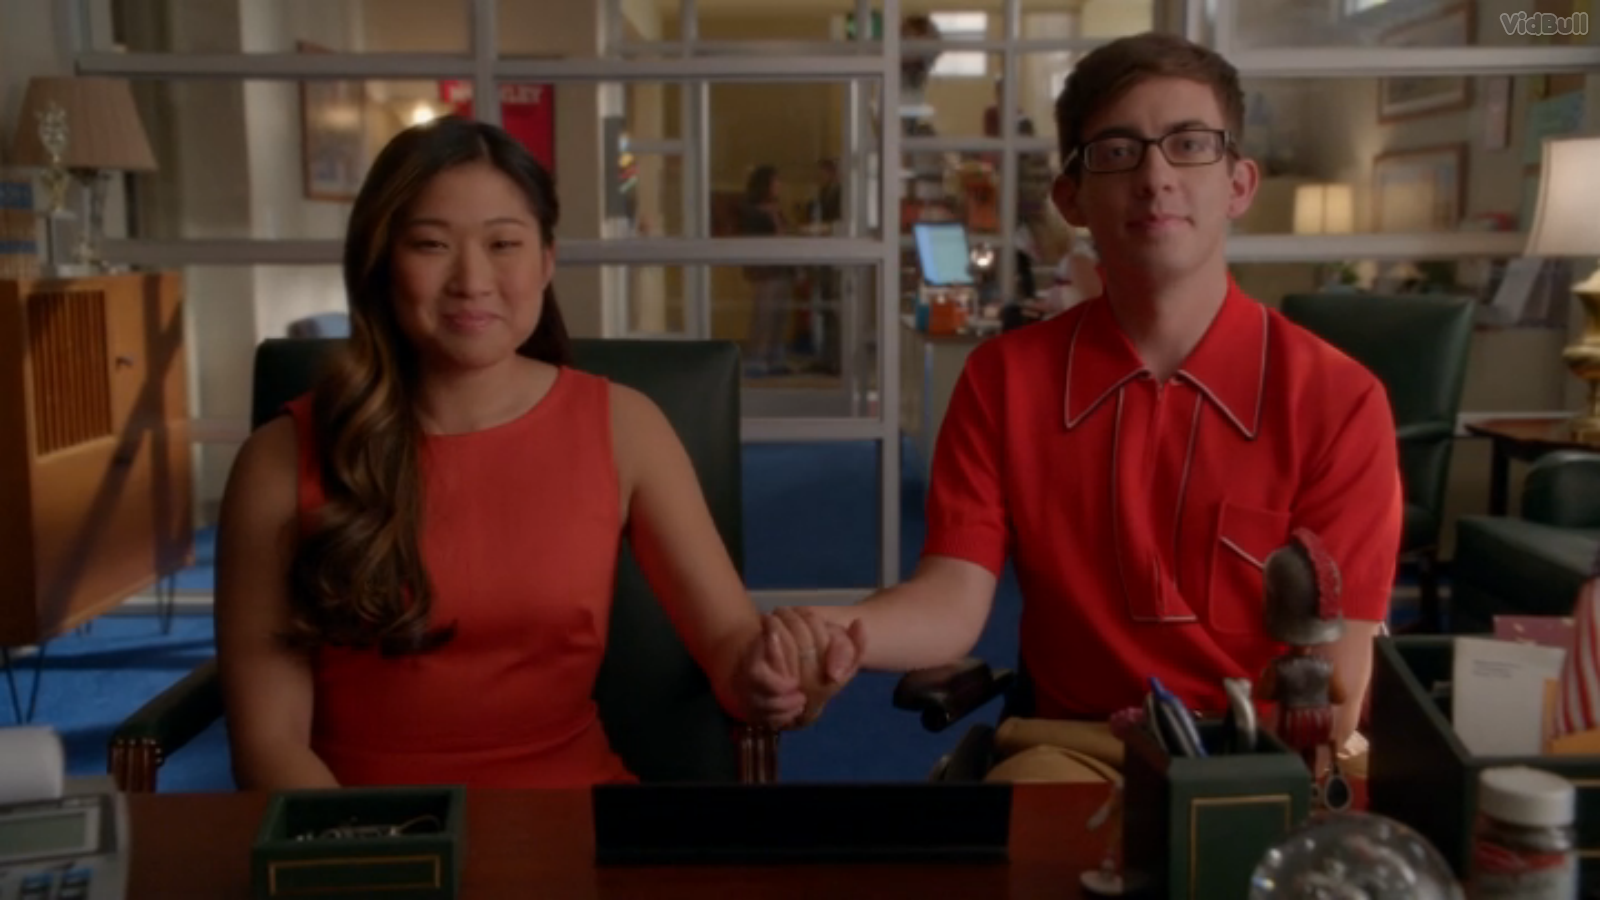 Who is actually dating on glee